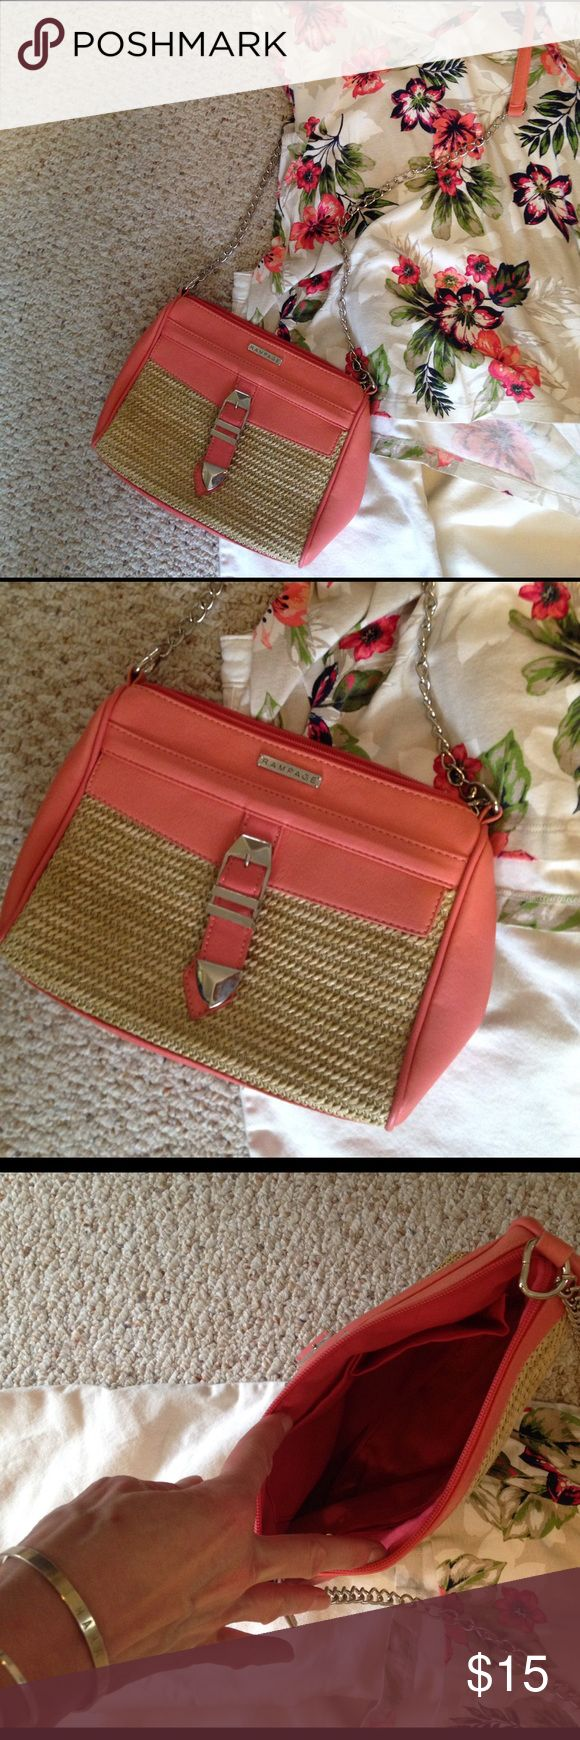 Rampage cross-body bag EUC beautiful coral and straw cross-body bag.  No marks, stains or other defects, perfect pinkish-peach color for your bright Spring wardrobe! Rampage Bags Shoulder Bags